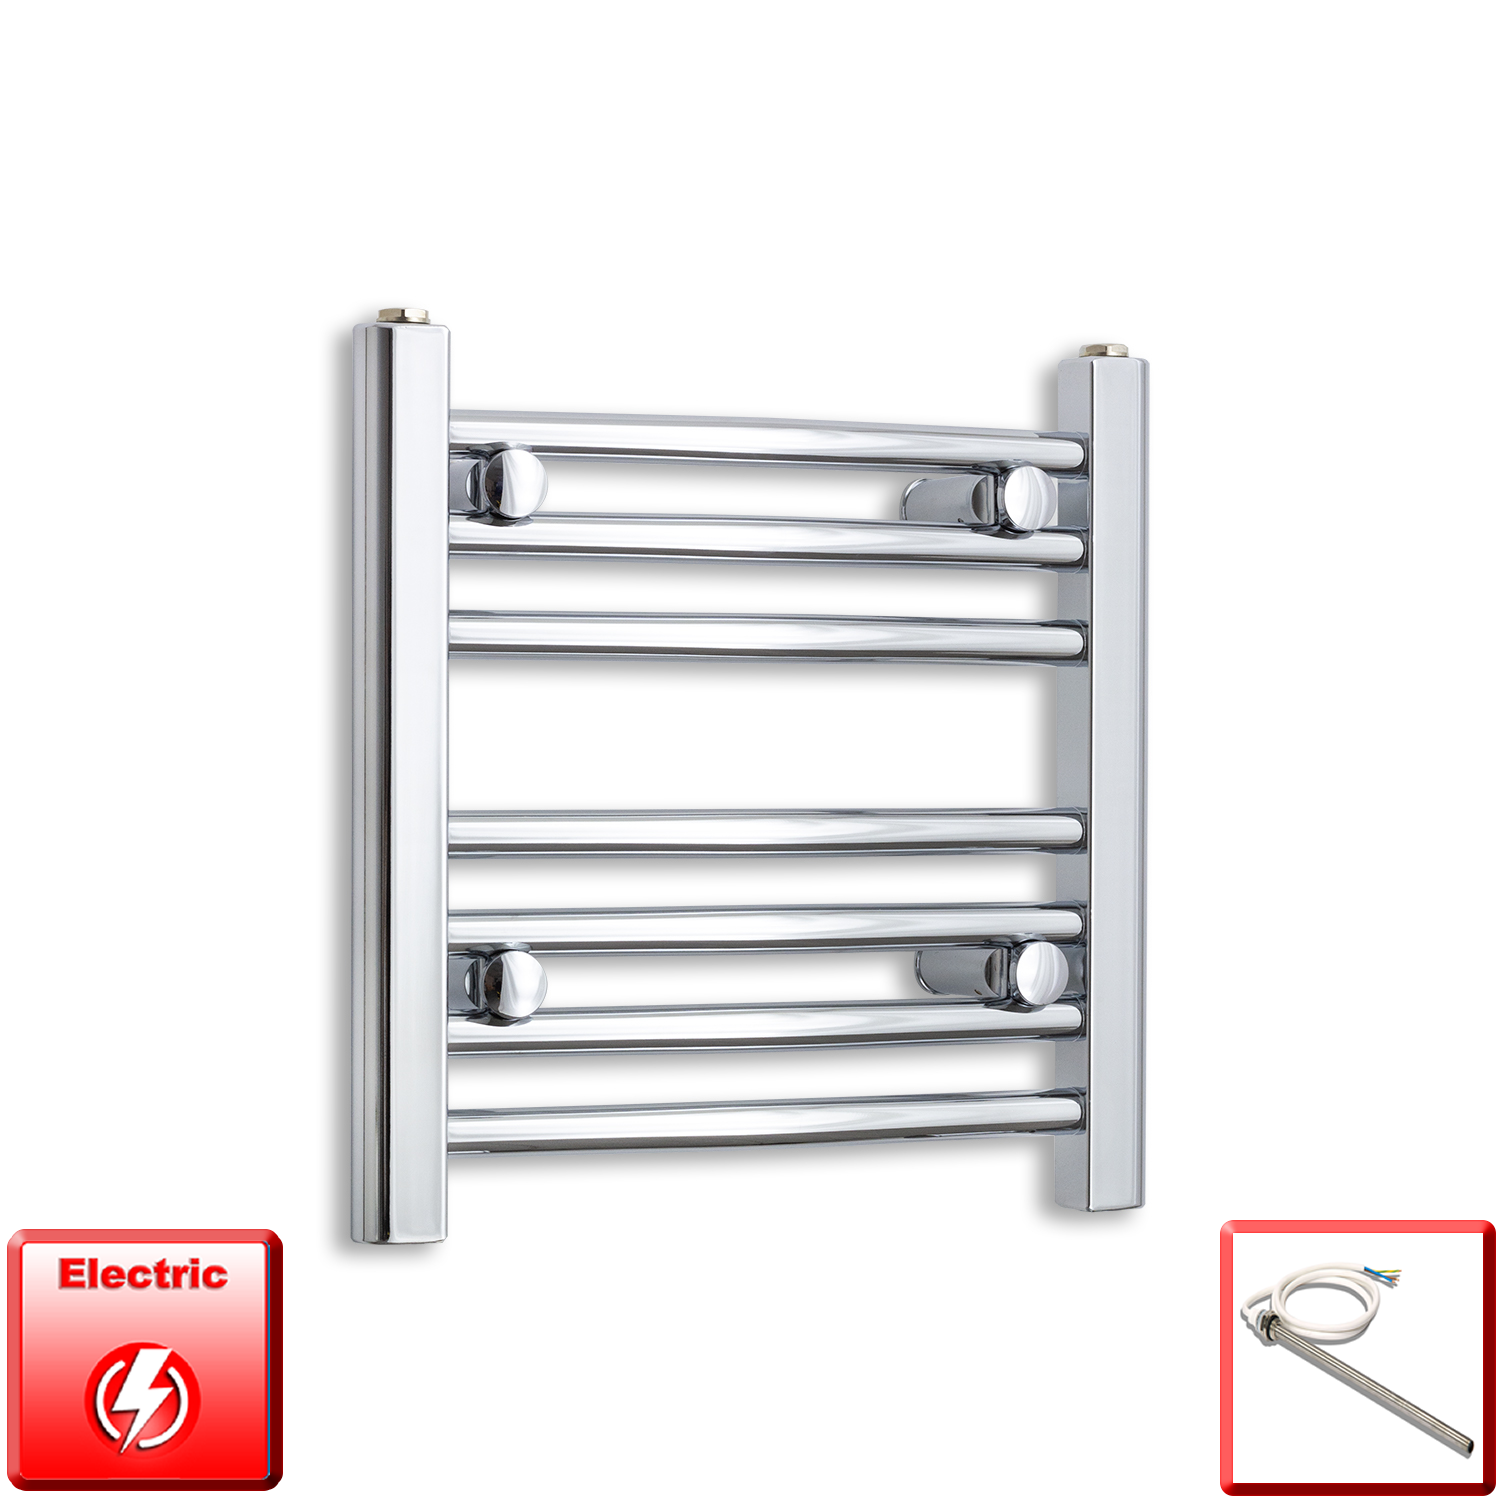 450mm Wide 400mm High Pre-Filled Chrome Electric Towel Rail Radiator With Single Heat Element